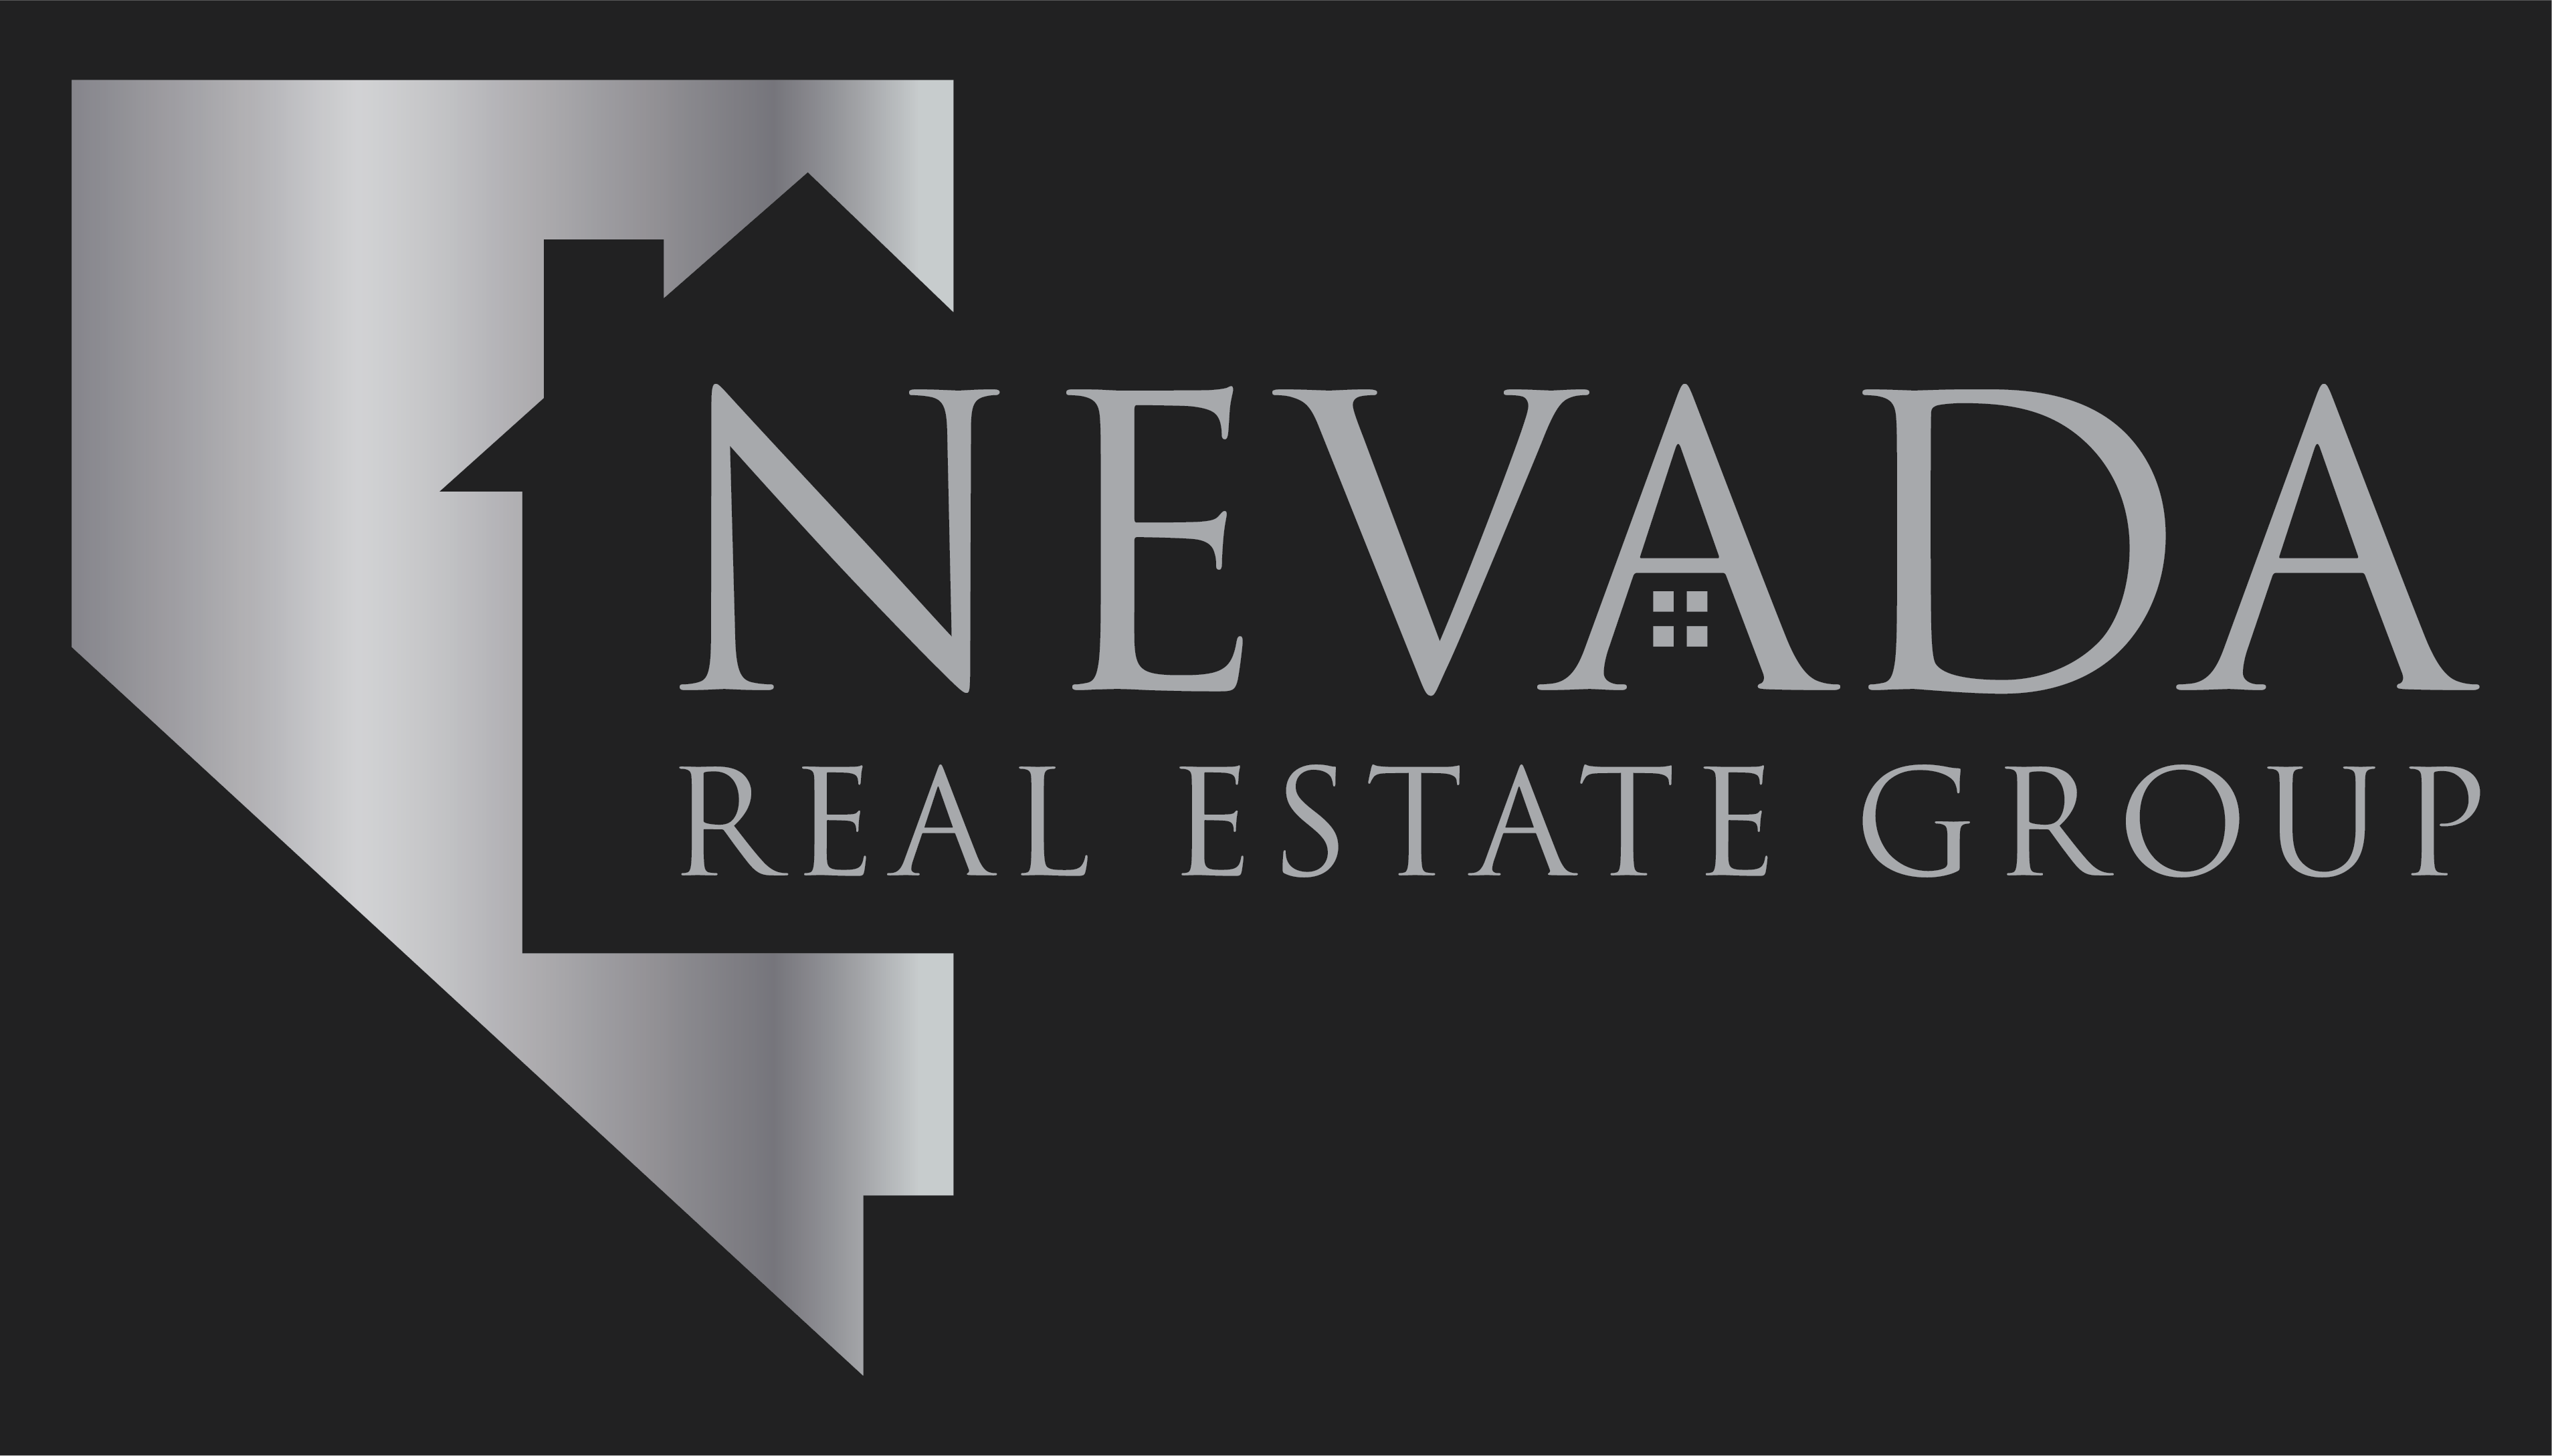 Nevada Real Estate Group, Keller Williams Realty, Group One, Inc. logo